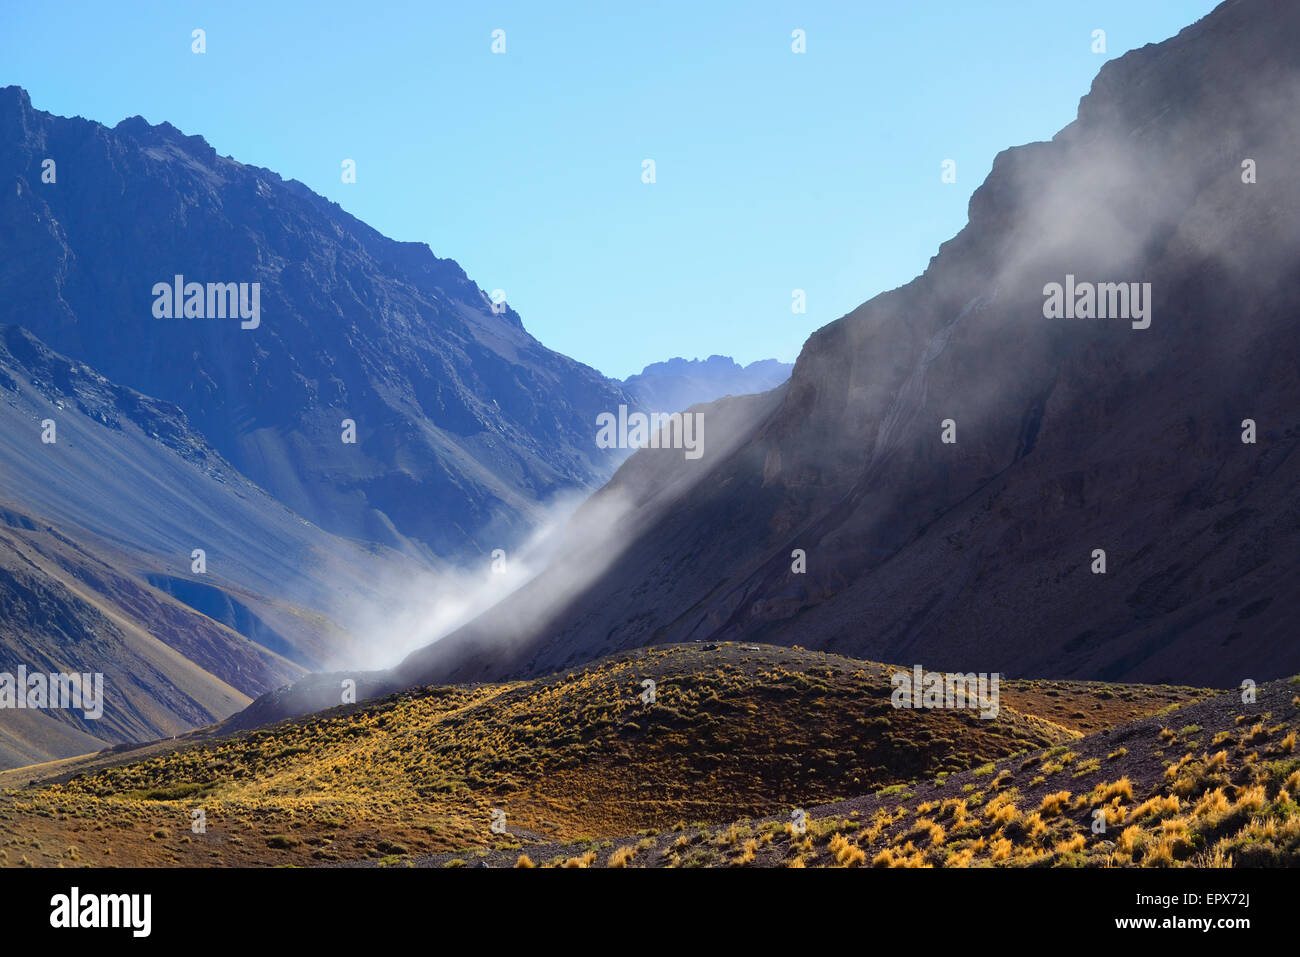 Argentina, Mendoza, Aconcagua Provincial Park, Landscape with mountain range and valley Stock Photo